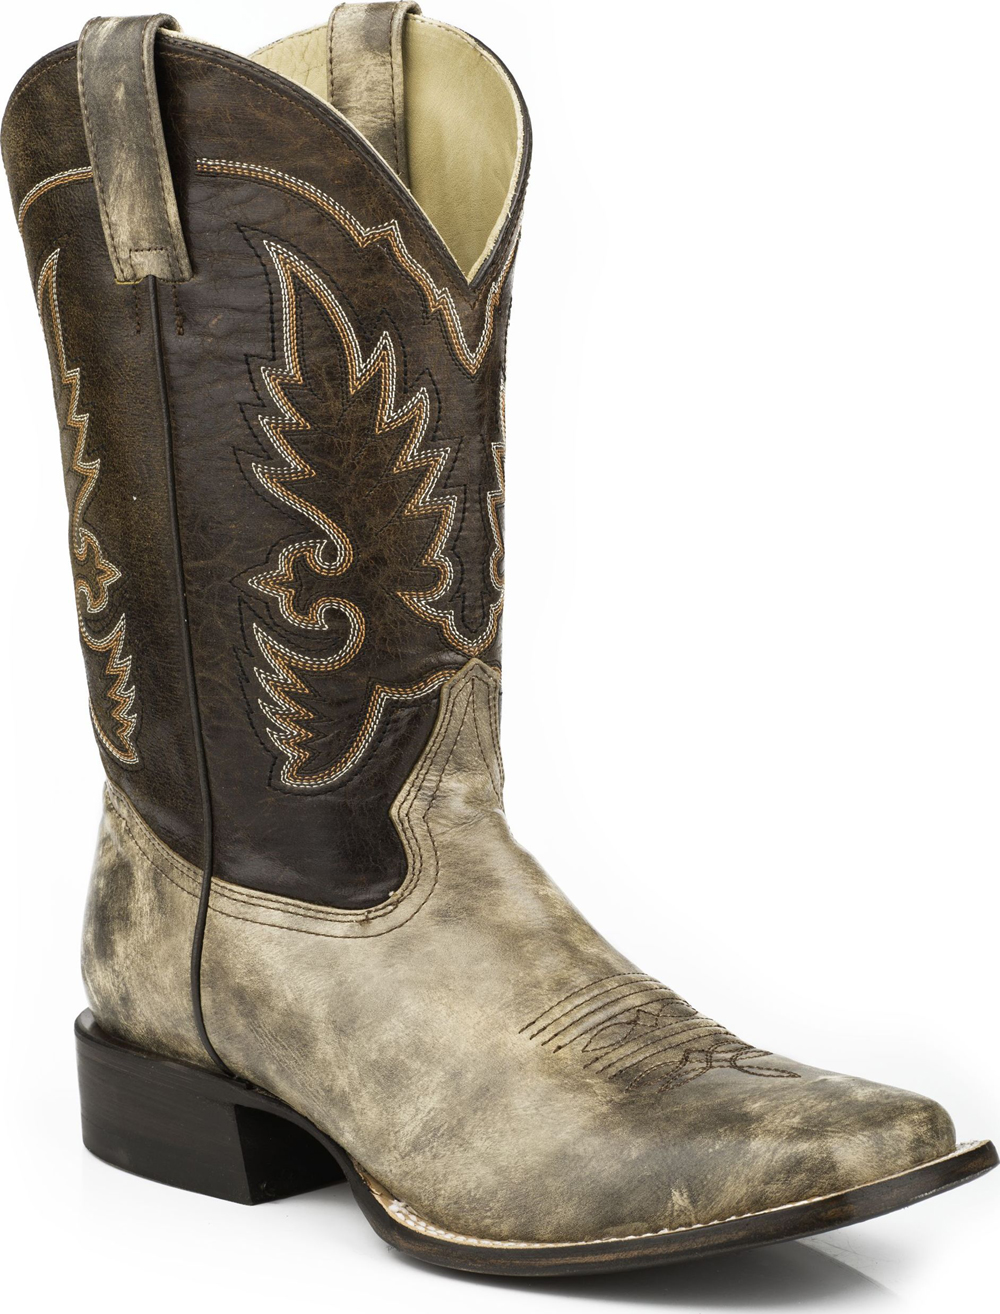 Stetson Men's Western Cowboy Boots Square Toe 0667 Beige Wide at Sears.com